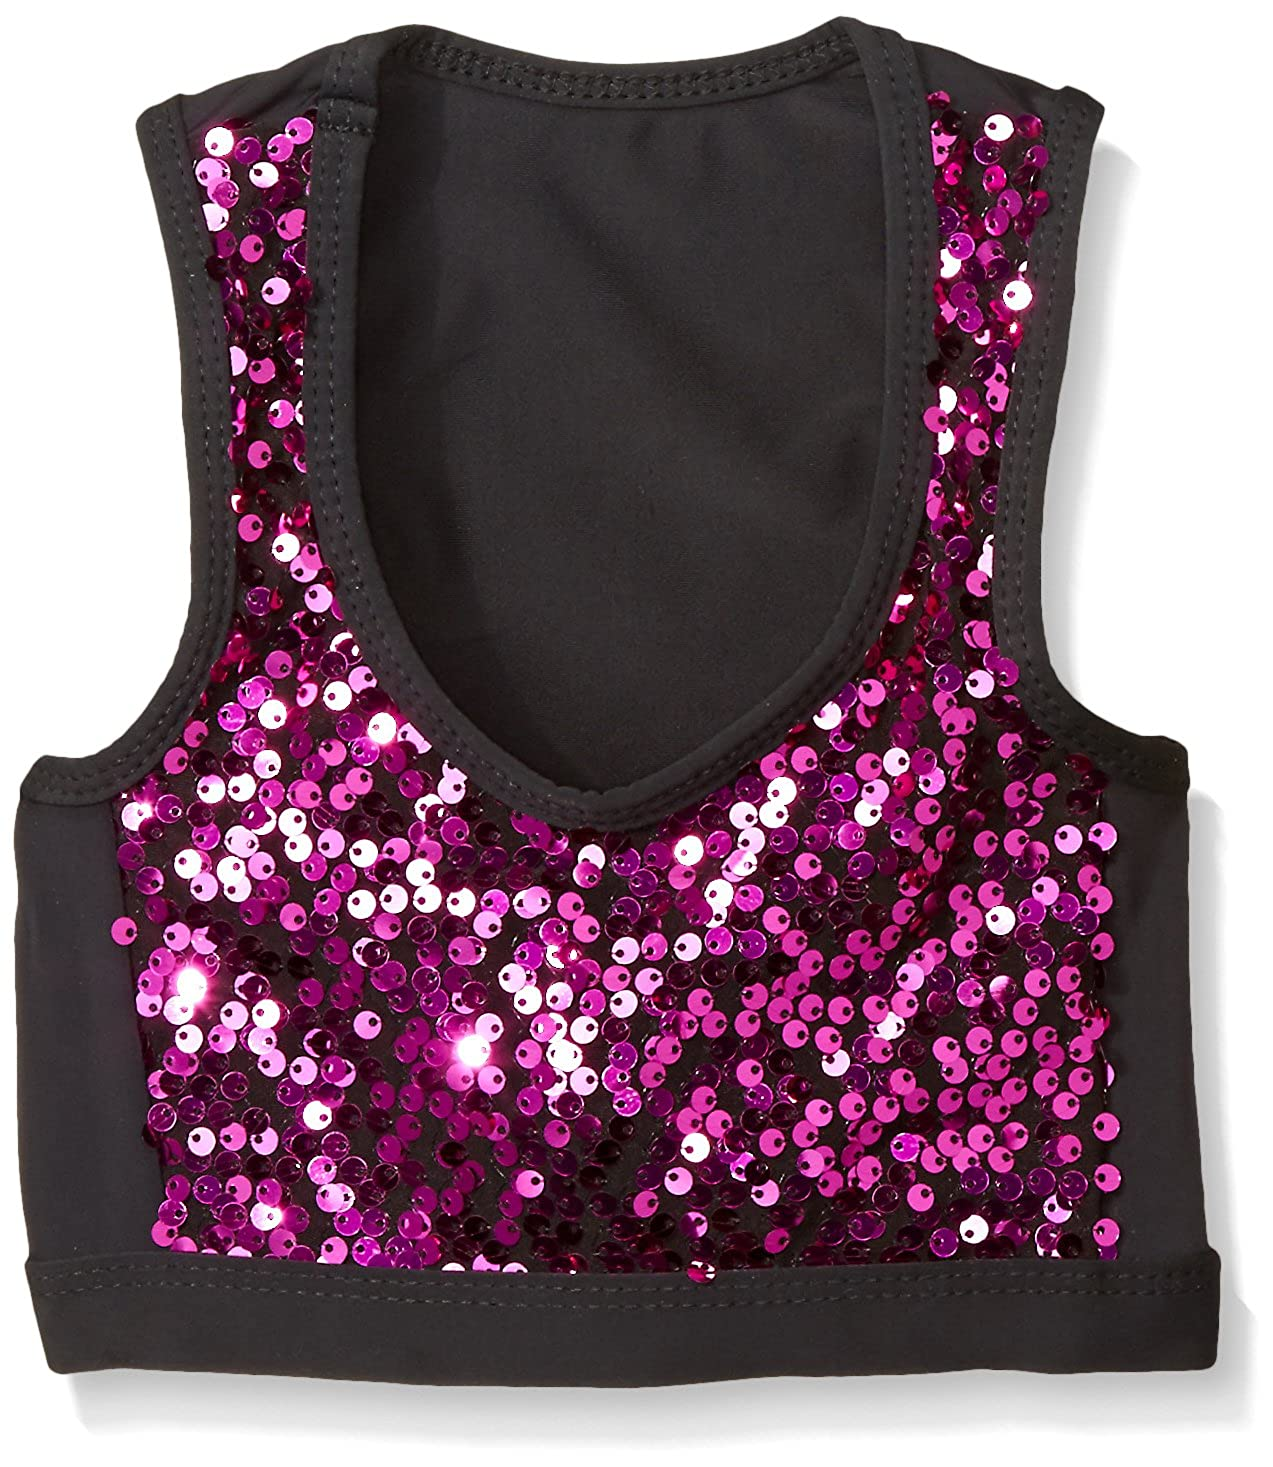 Gia Mia Dance Girls Big Sequin Block Bra Top